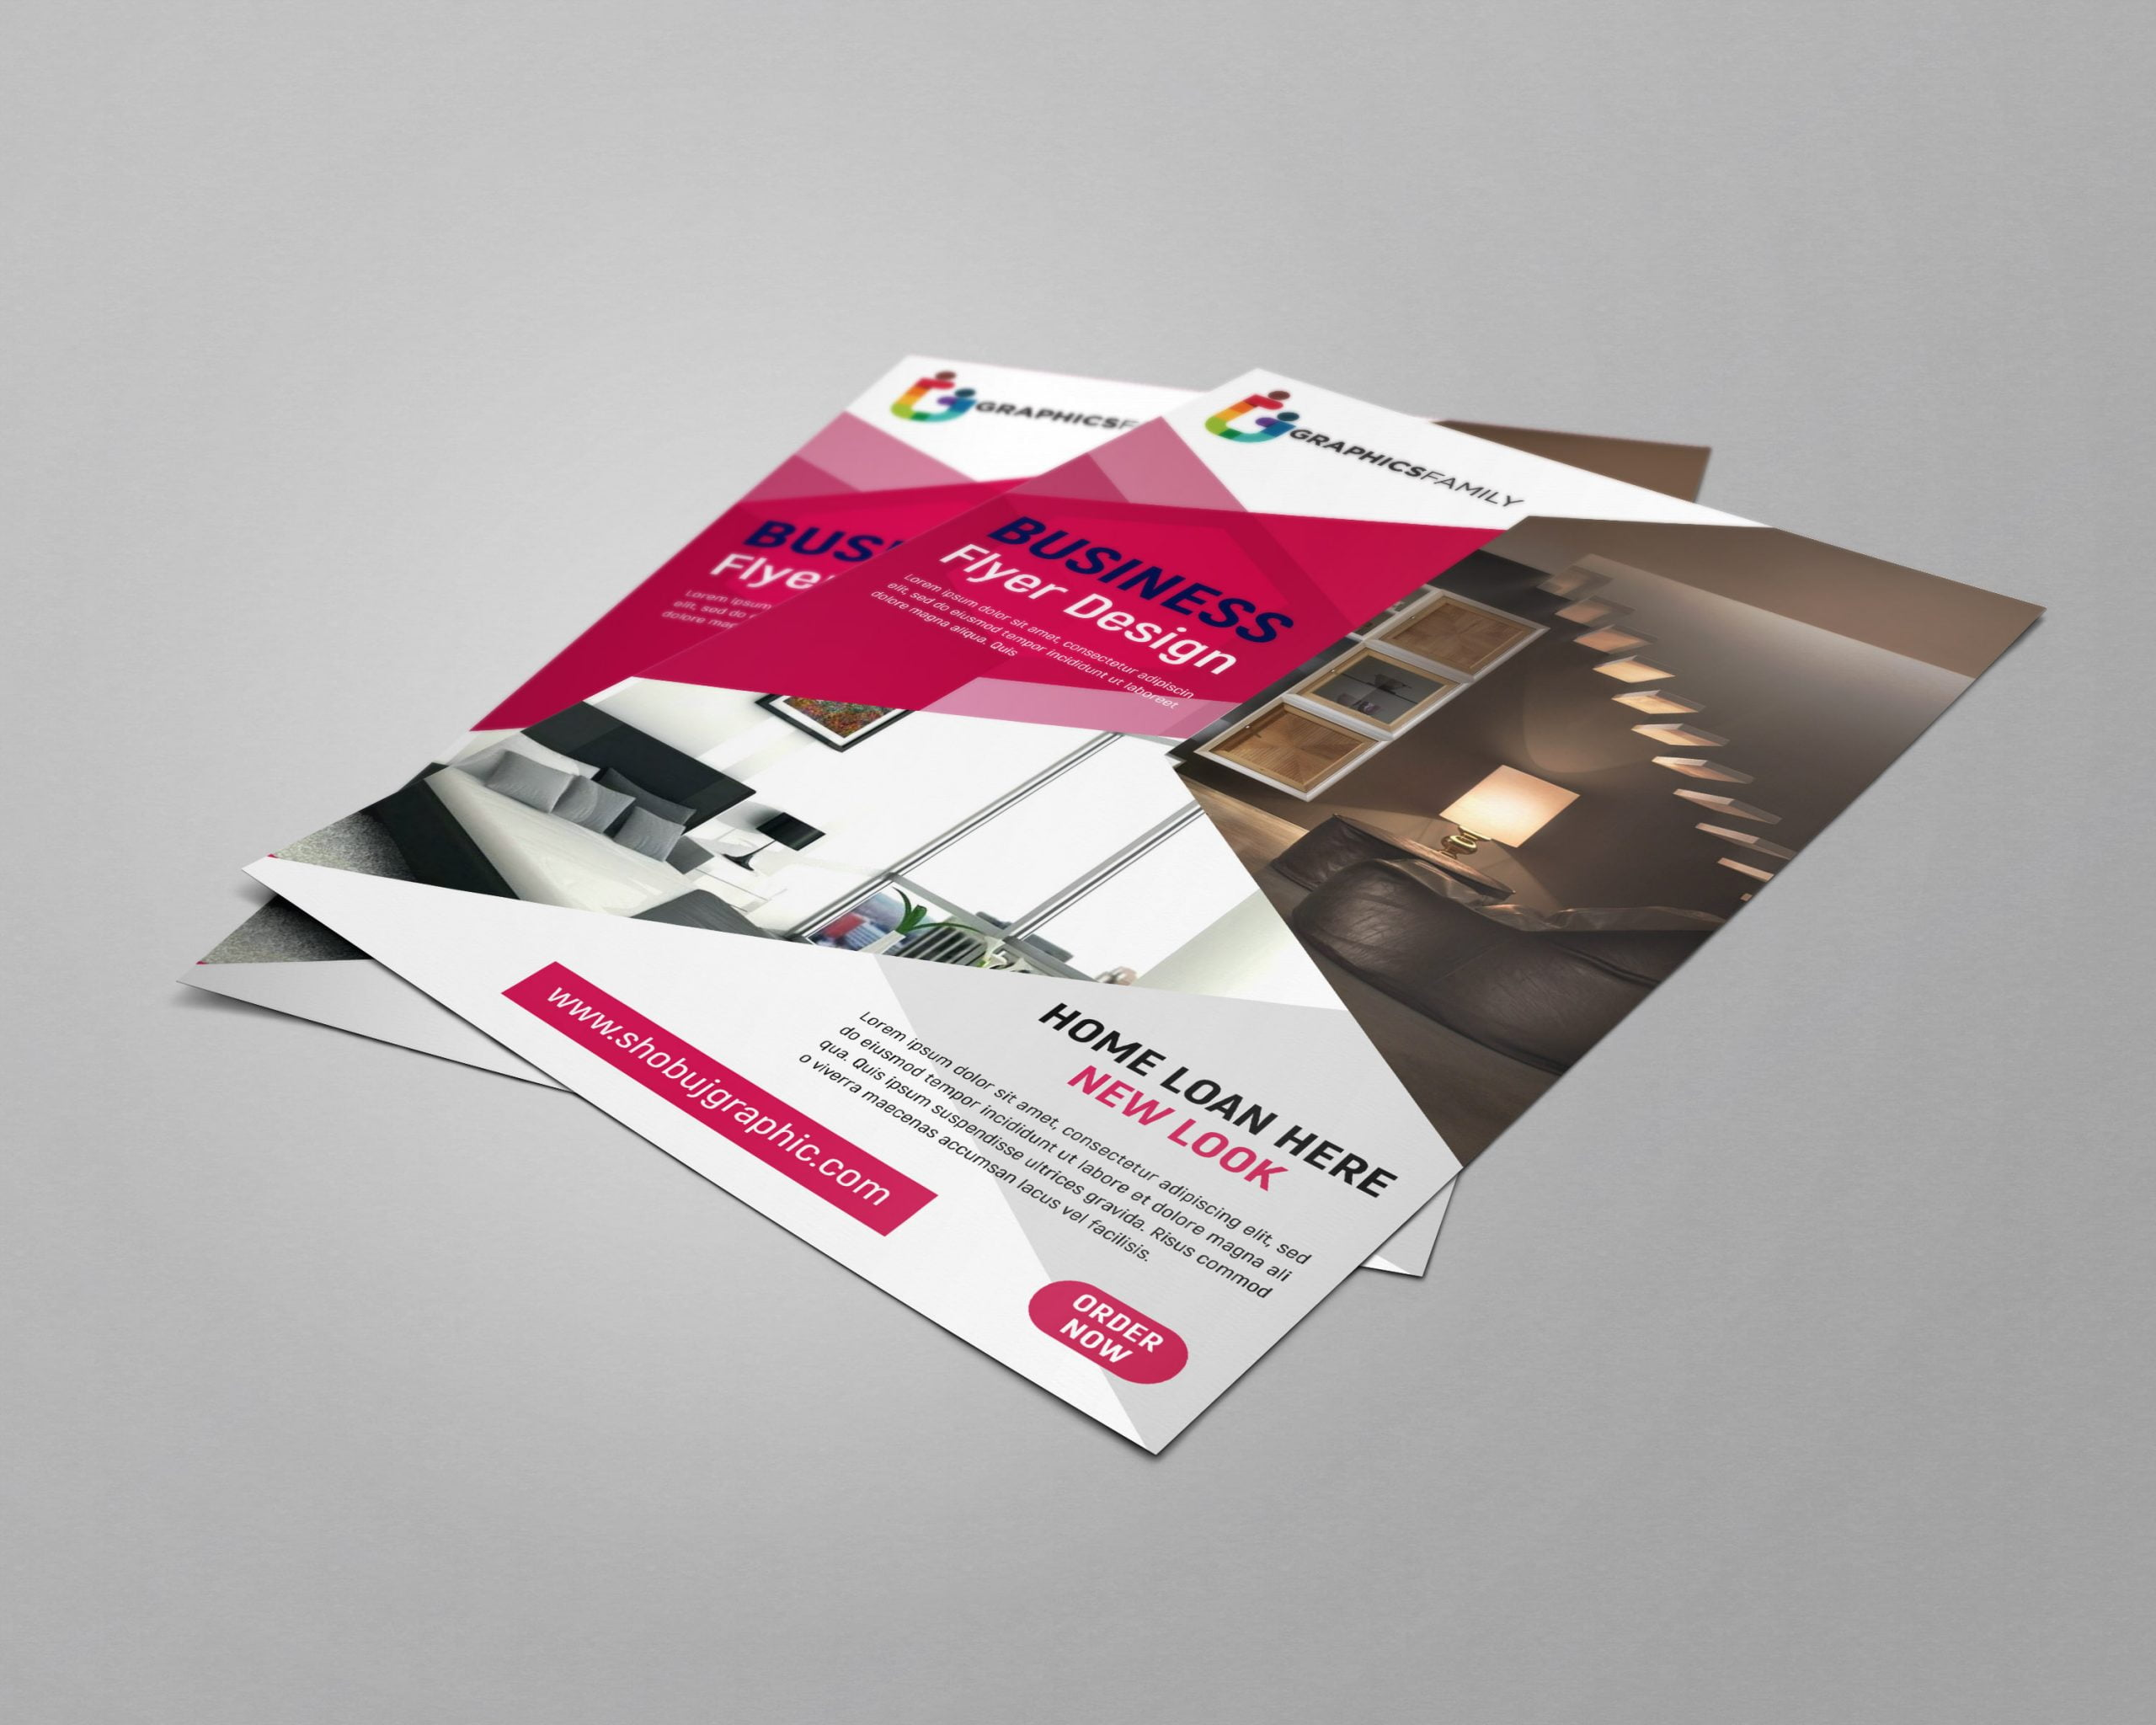 Free flyer design for home loan service